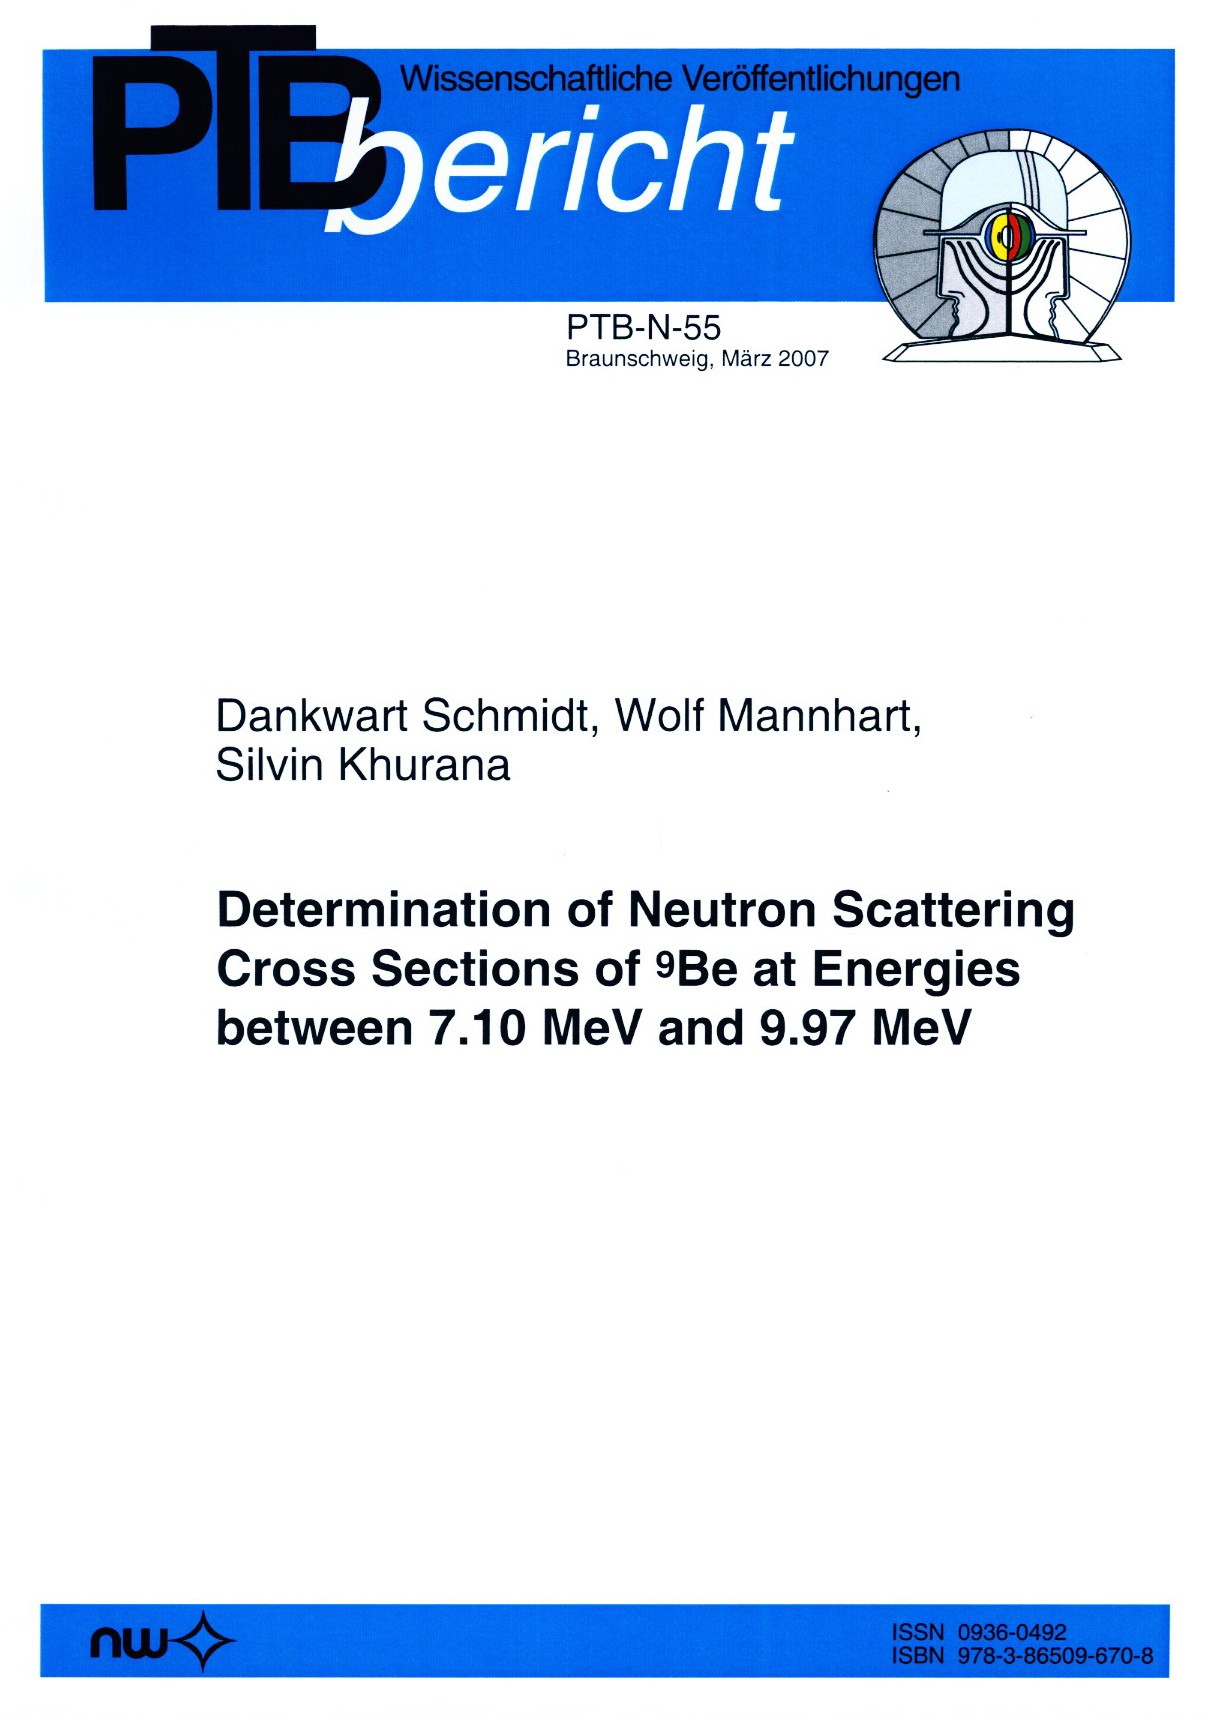 Determination of Neutron Scattering Cross Sections of 9Be at Energies between 7.10 MeV and 9.97 MeV